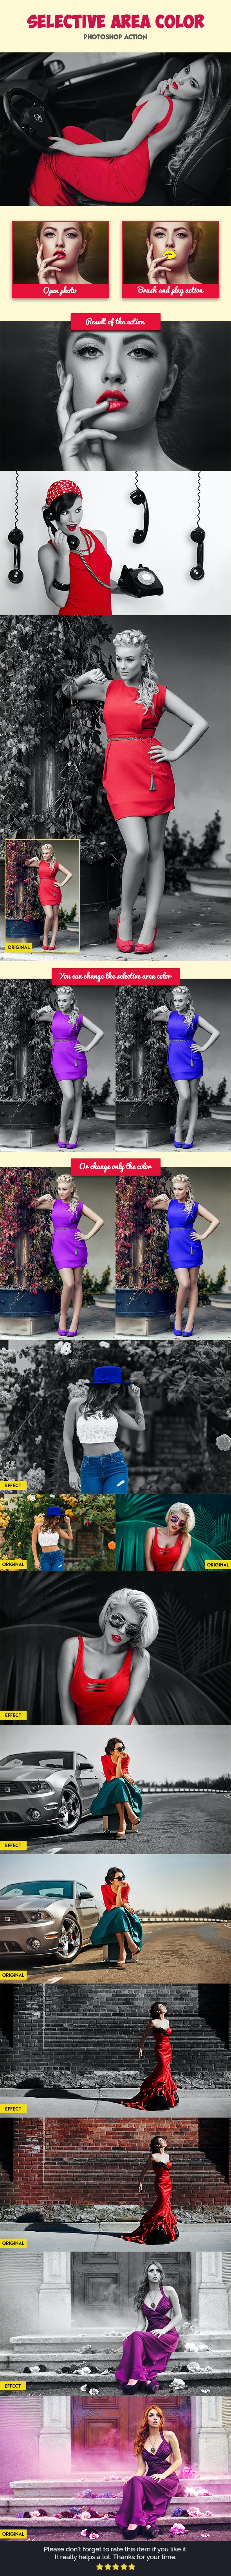 Selective Area Color V2 - Photo Effects Actions